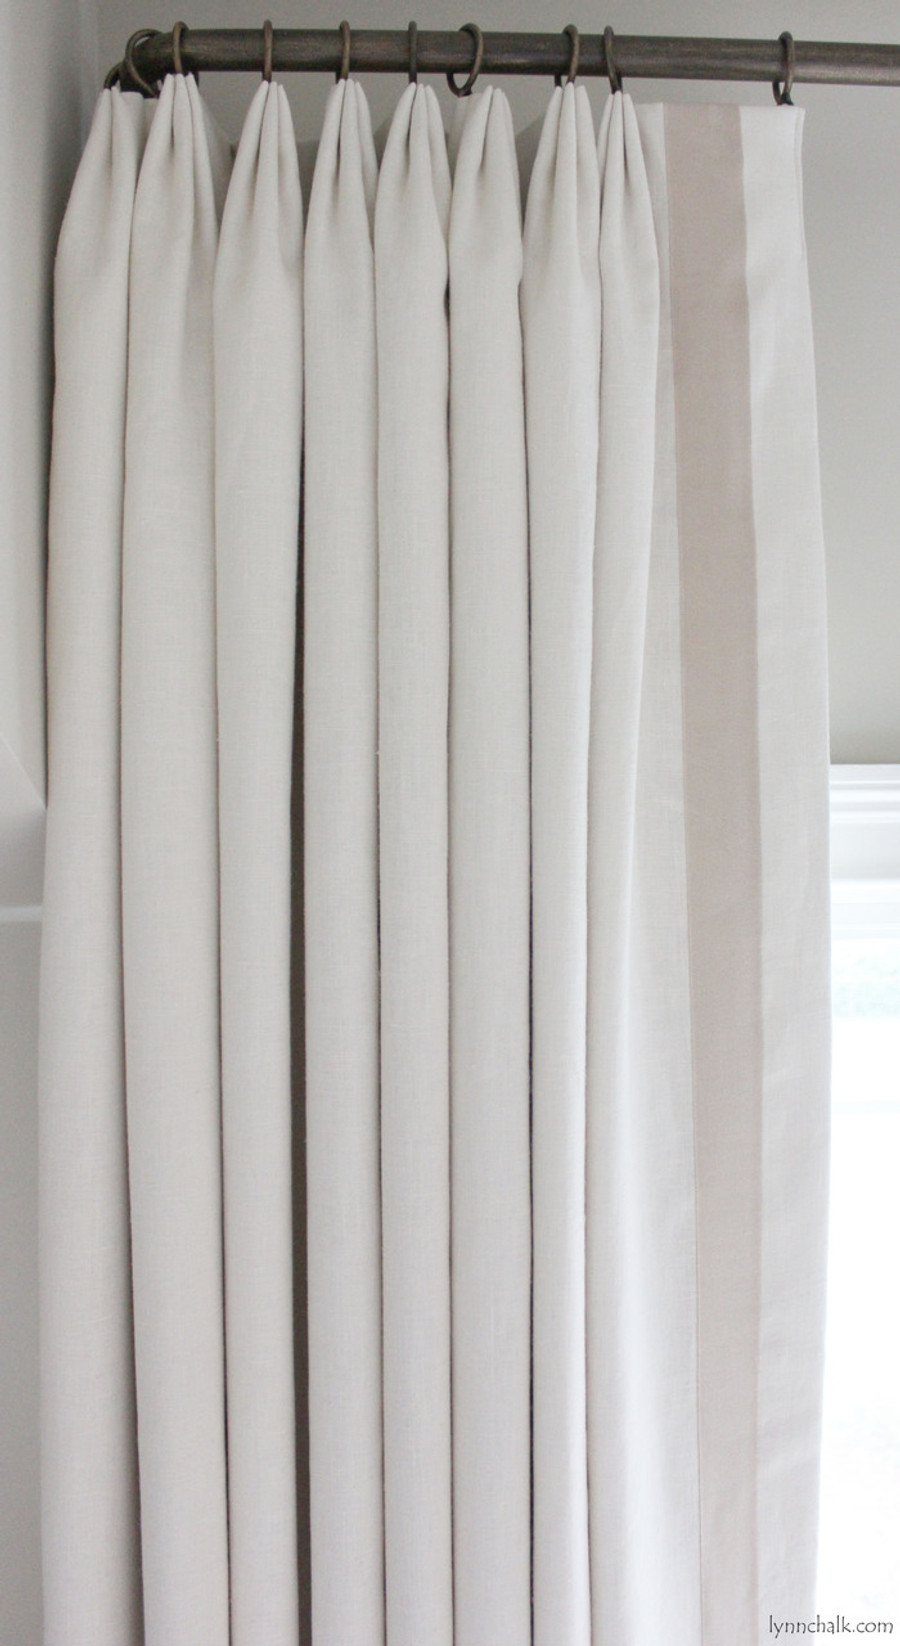 Custom Euro Pleated Drapes in Kravet Dublin Linen (Comes in Over 50 Beautiful Colors) with Samuel & Sons Grosgrain Trim Sand